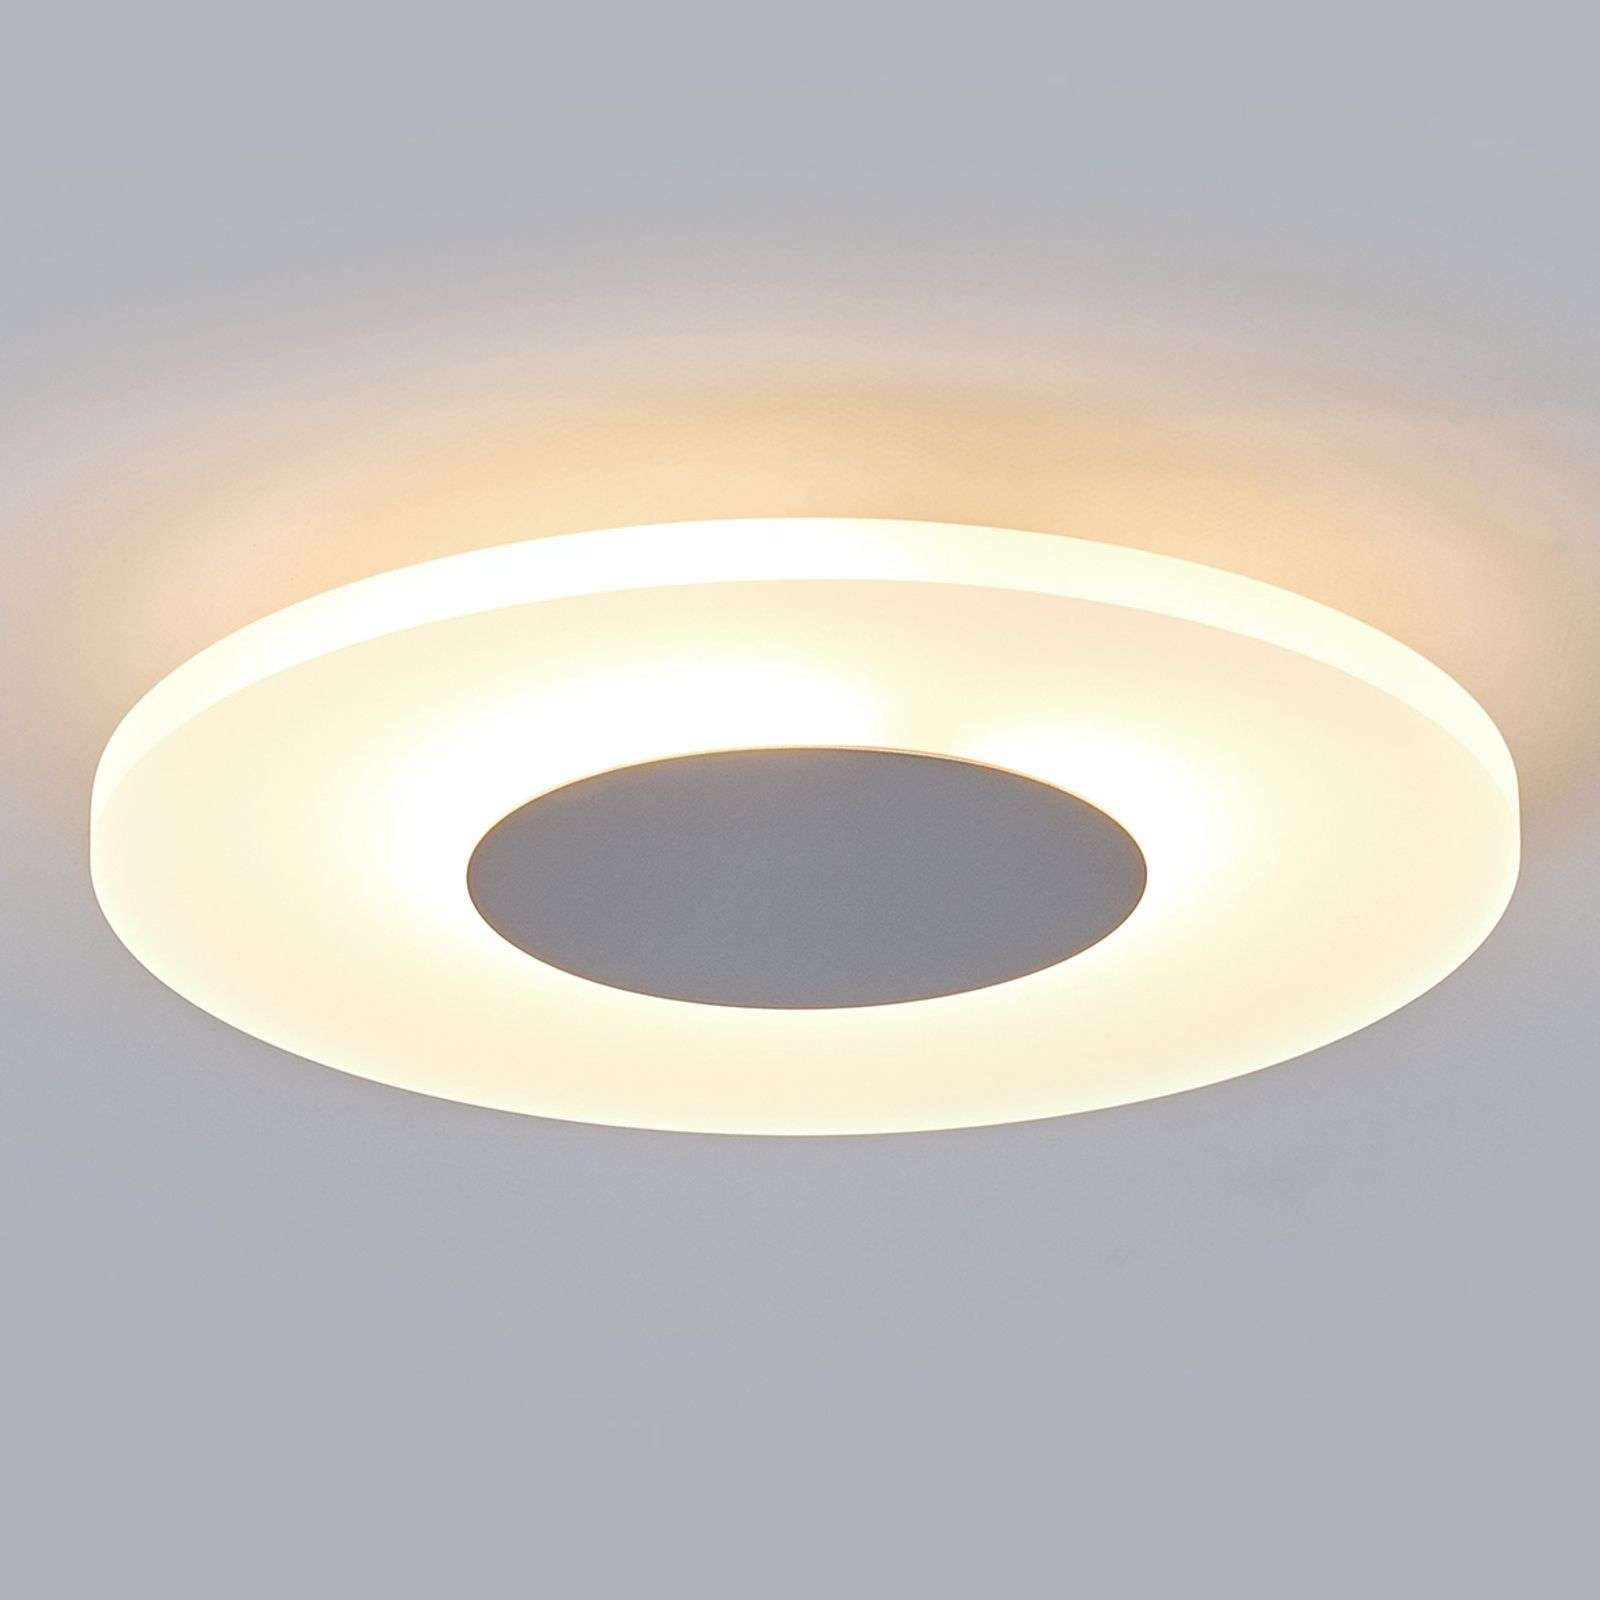 Decoratieve LED-plafondlamp Tarja